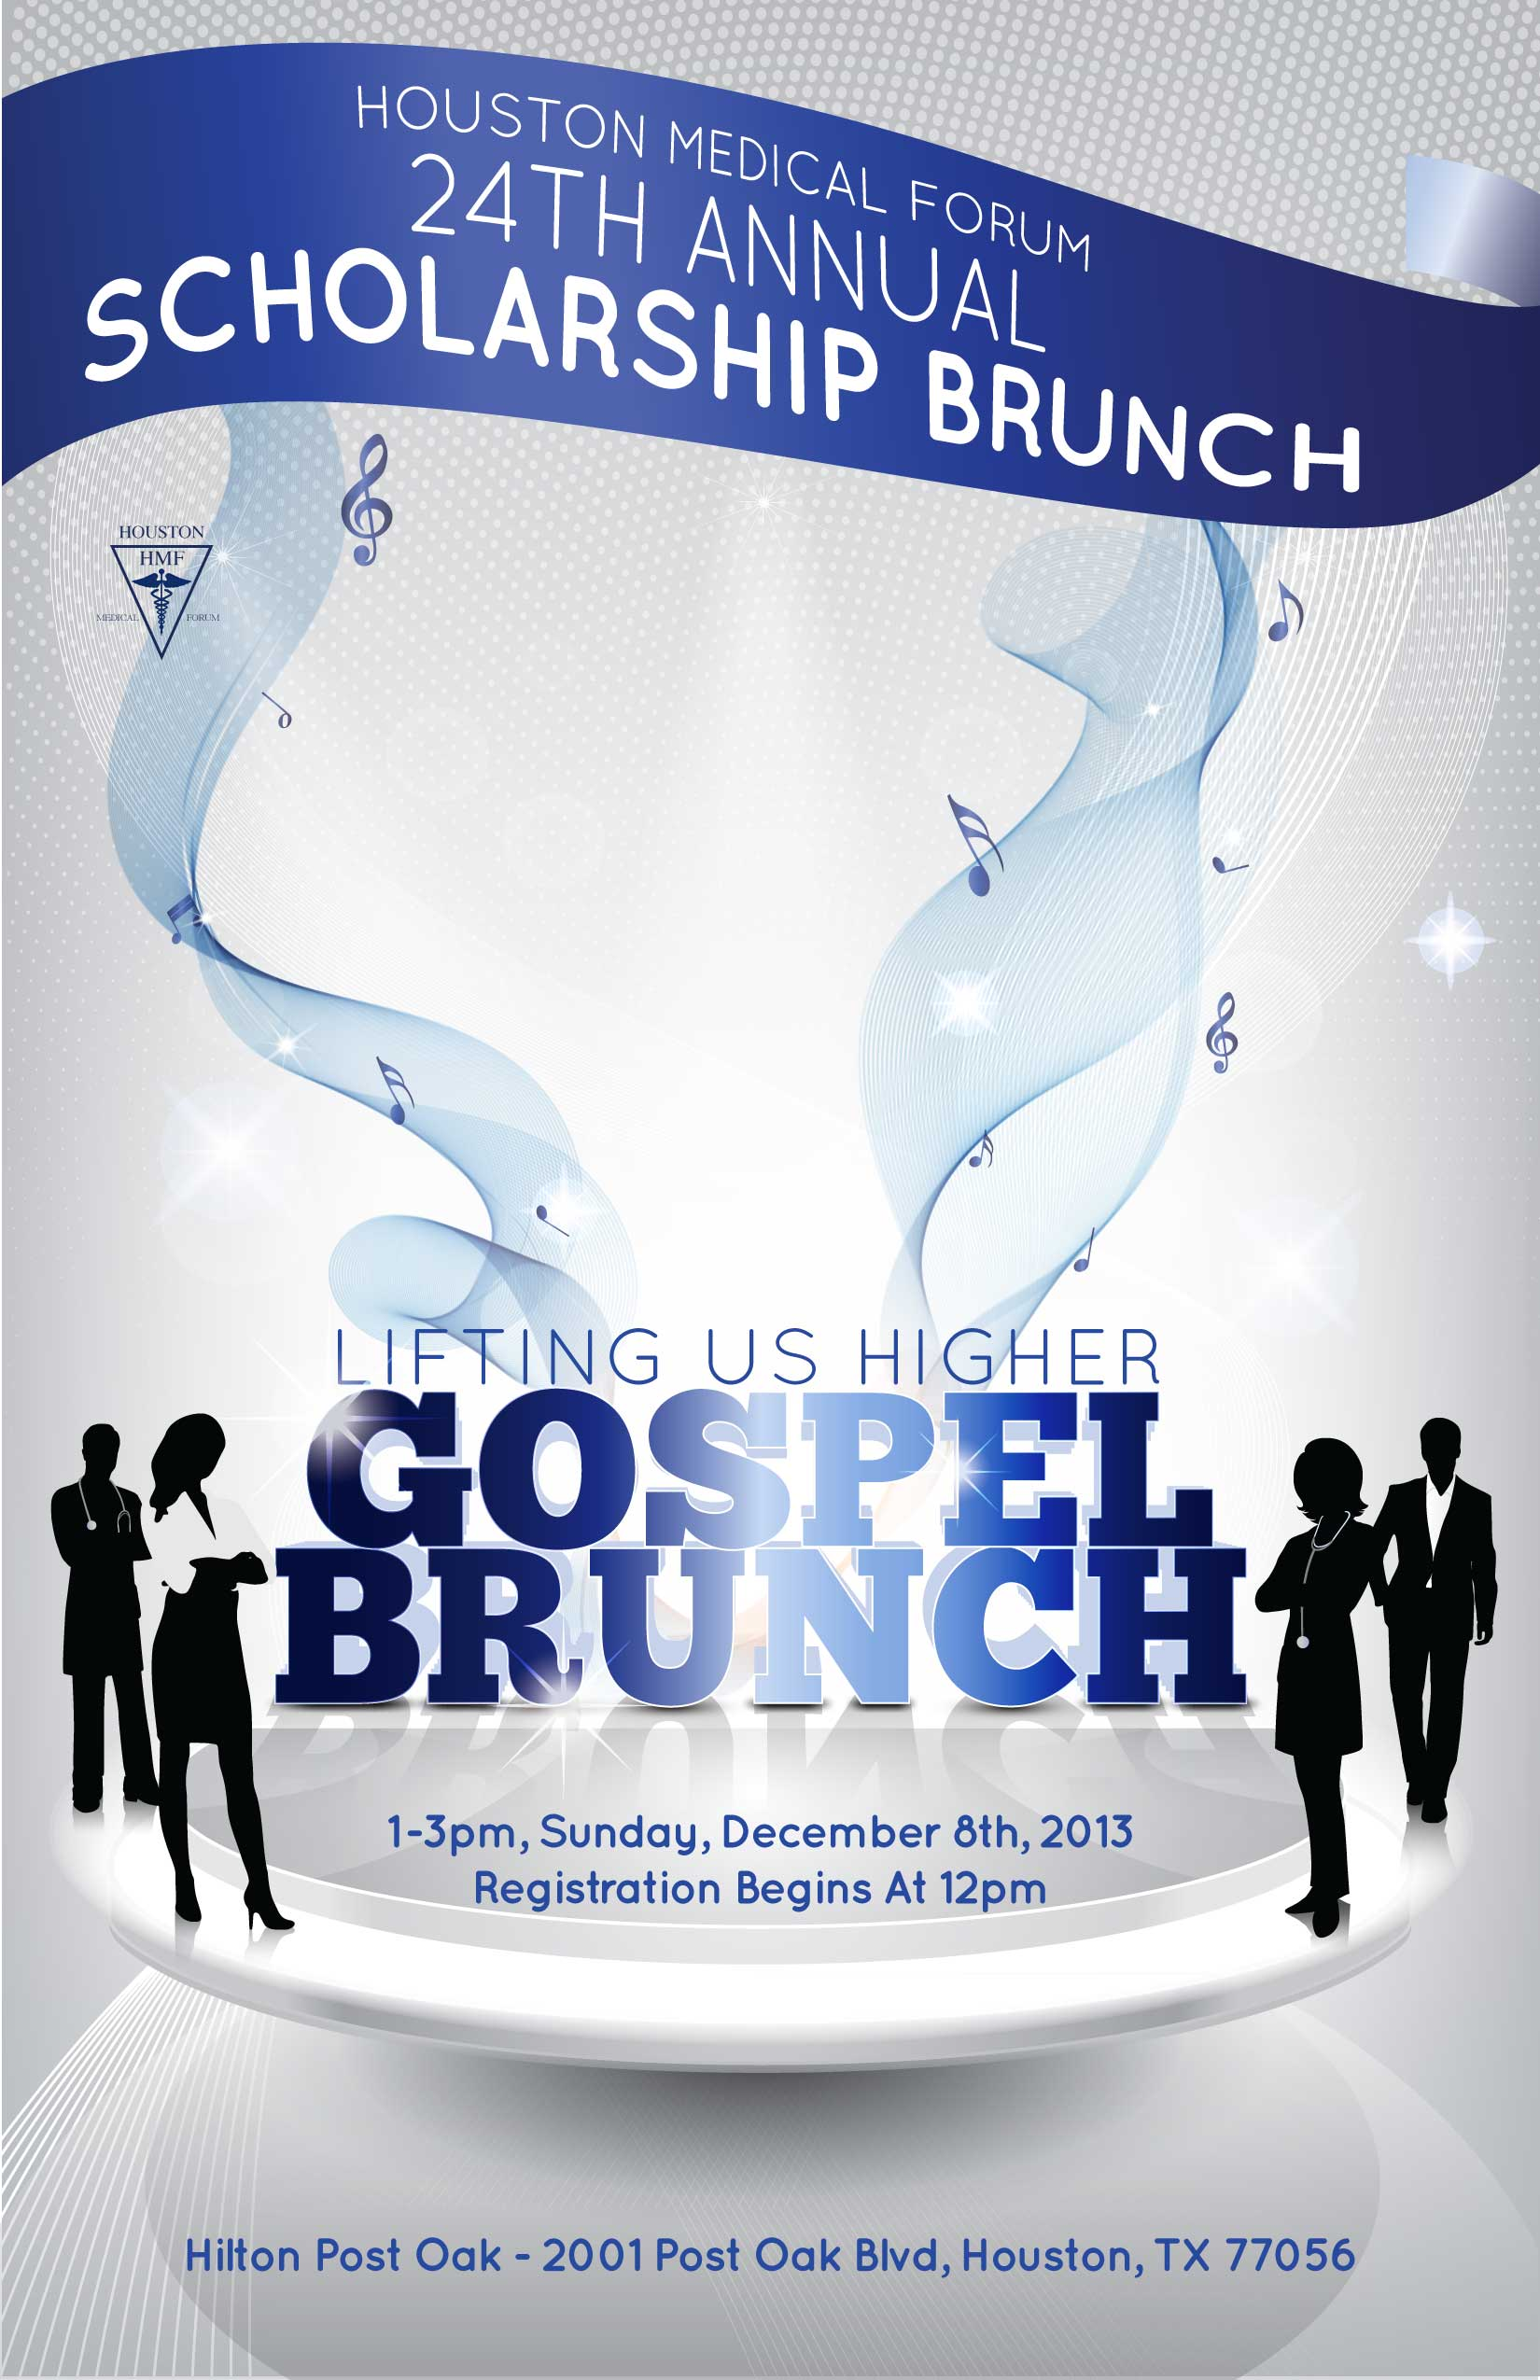 HMF 24th Annual Scholarship Brunch